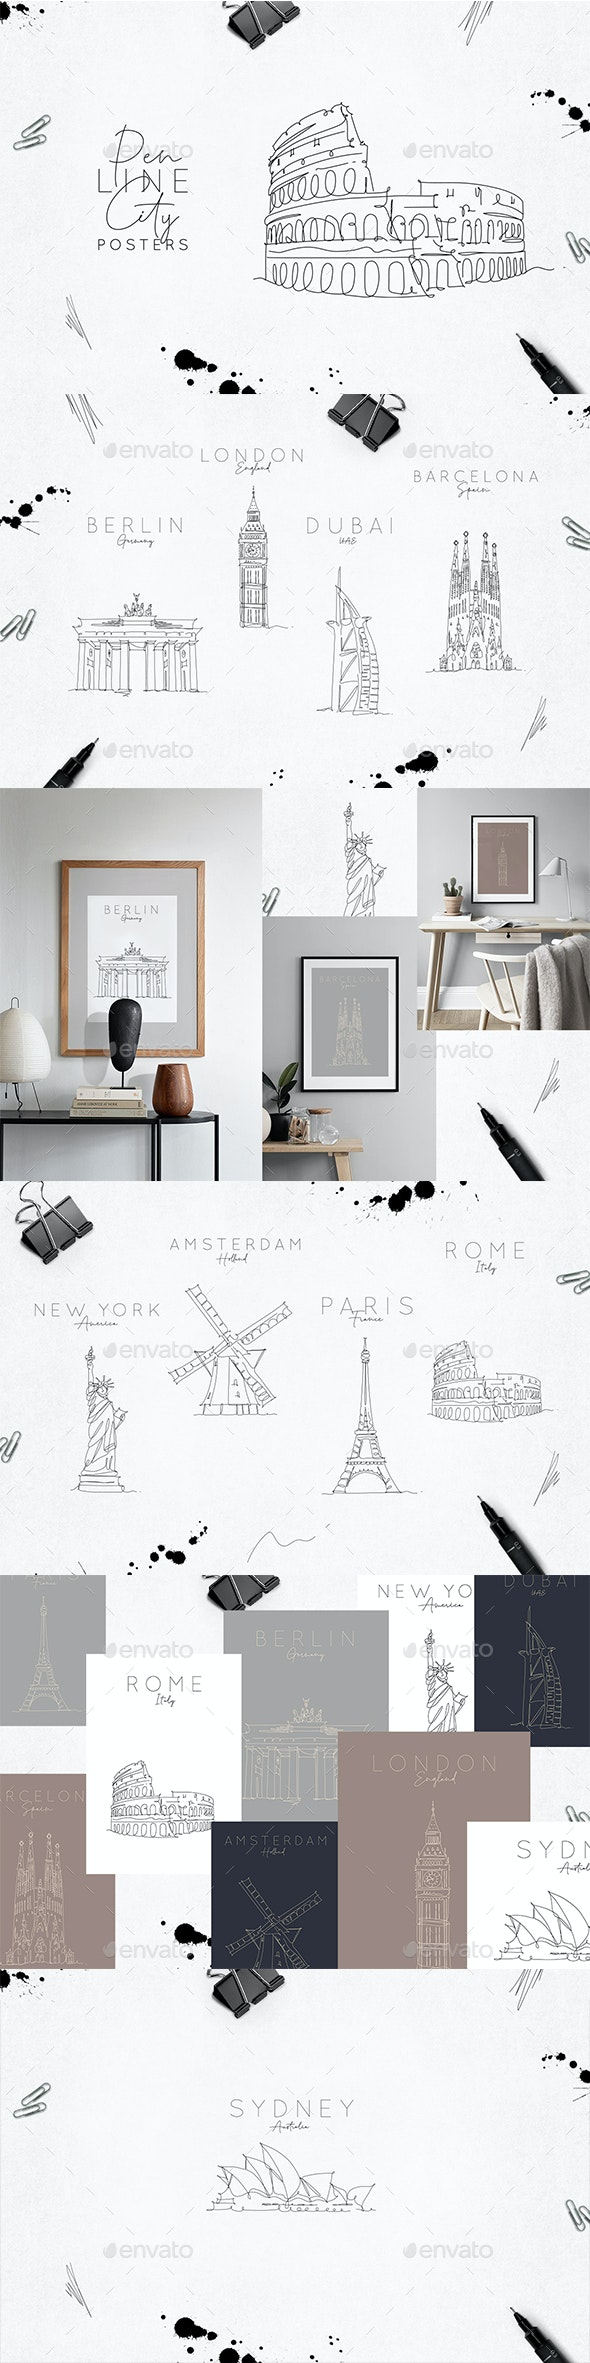 Pen Line City Posters - Buildings Objects